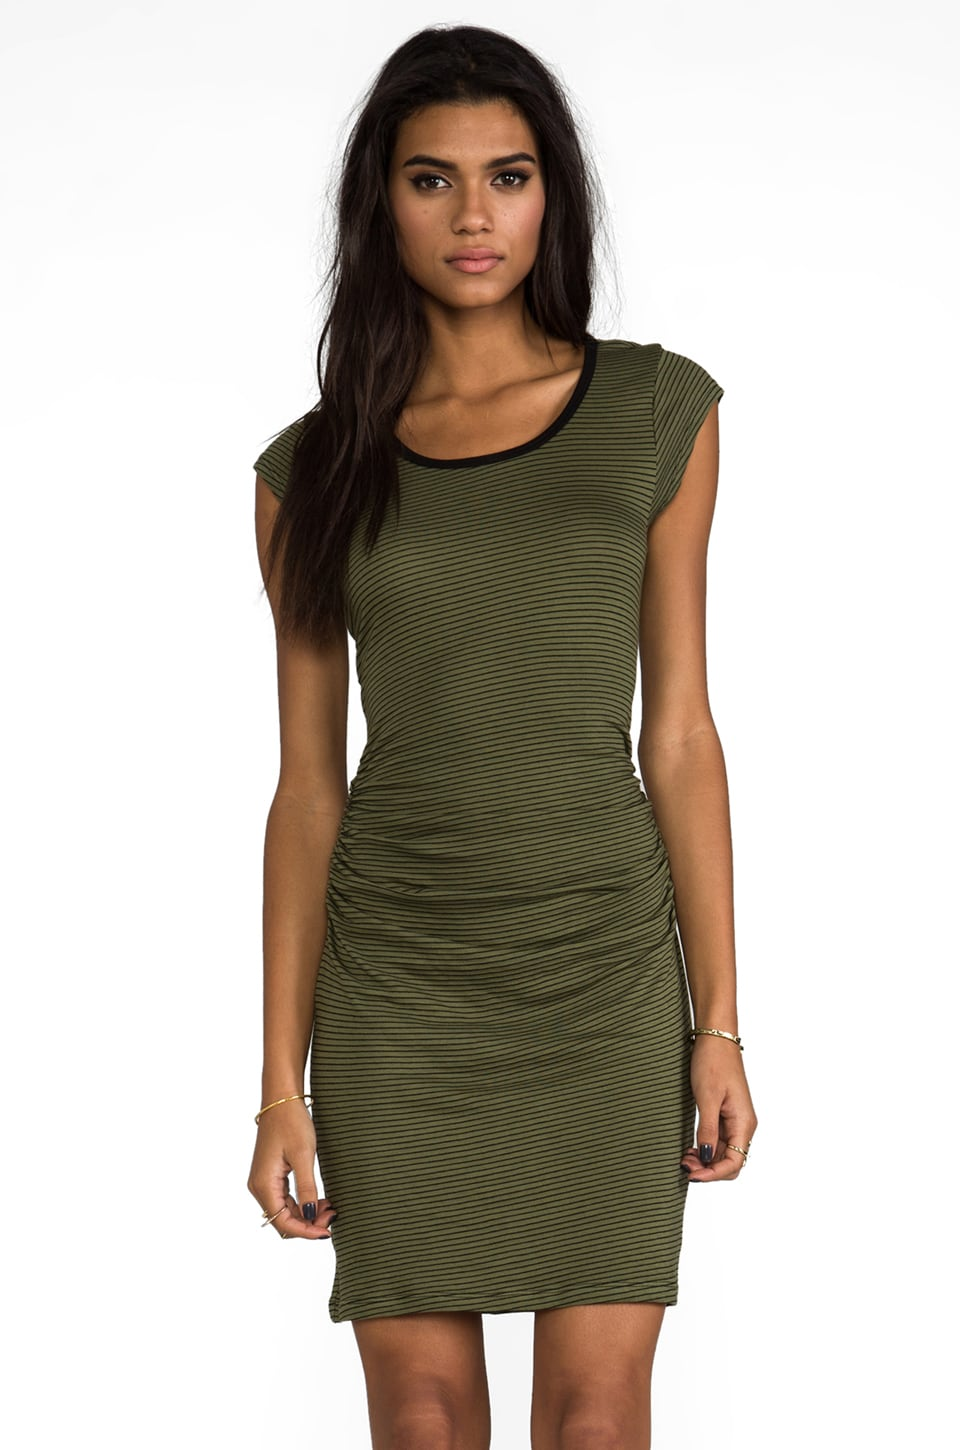 Kain Highsmith Dress in Army Green